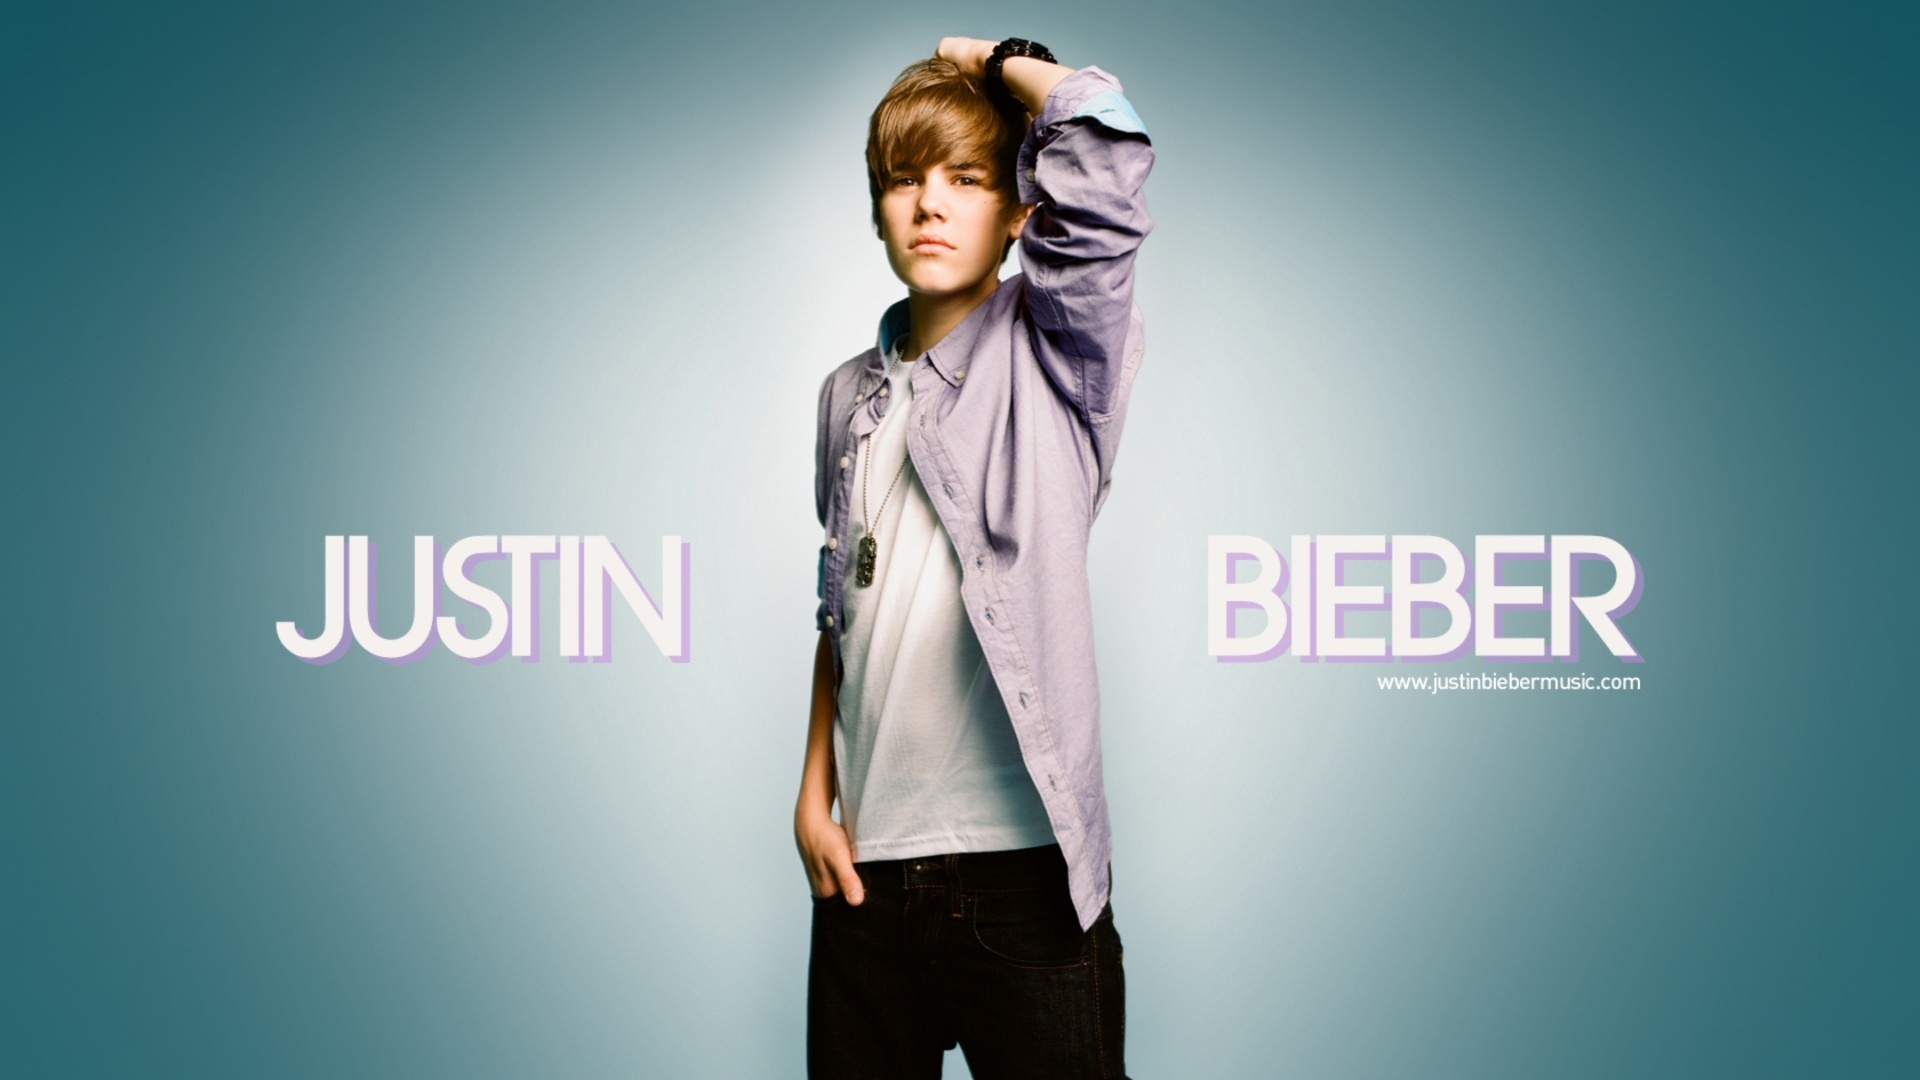 Justin Bieber Poster Pictire